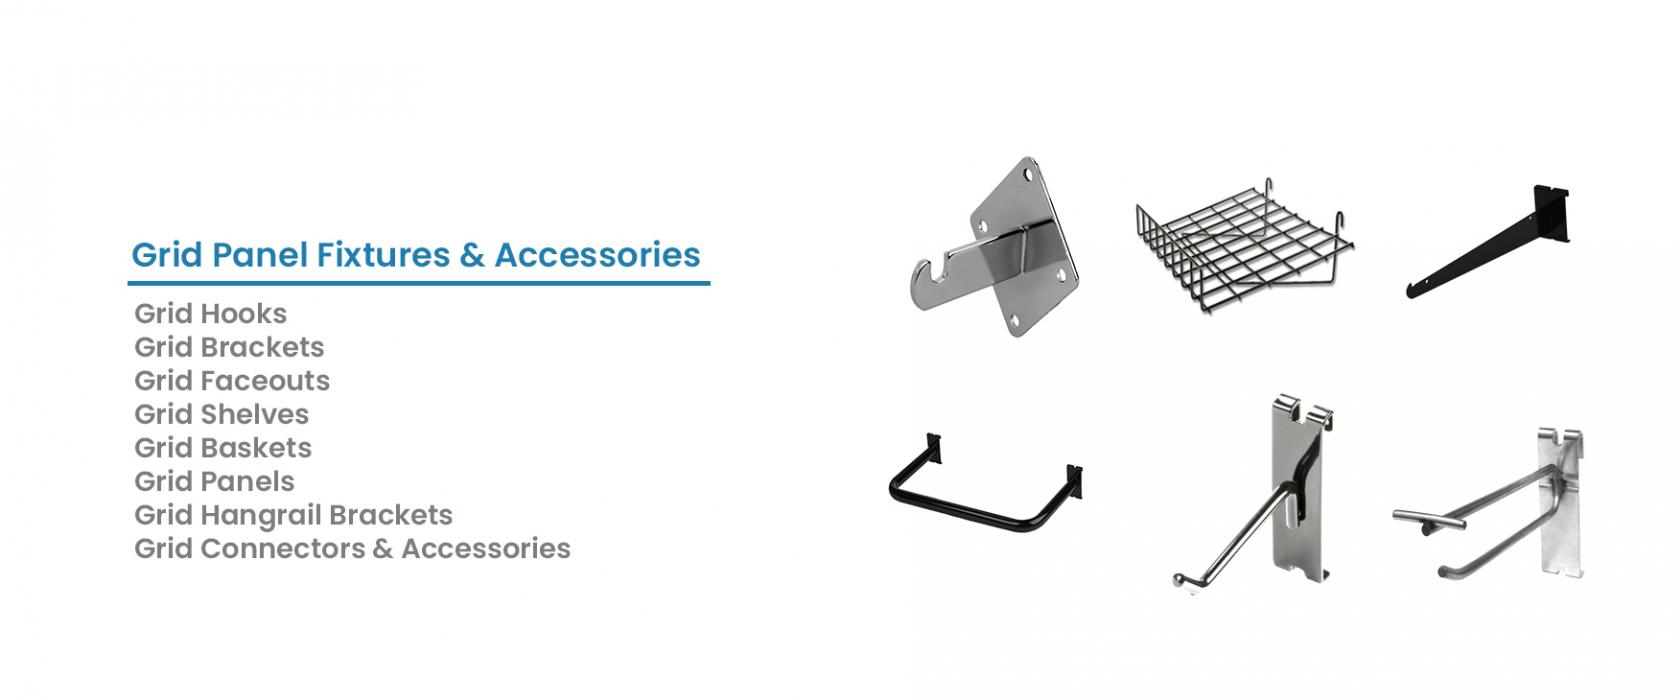 Grid Panel Fixtures and Accessories